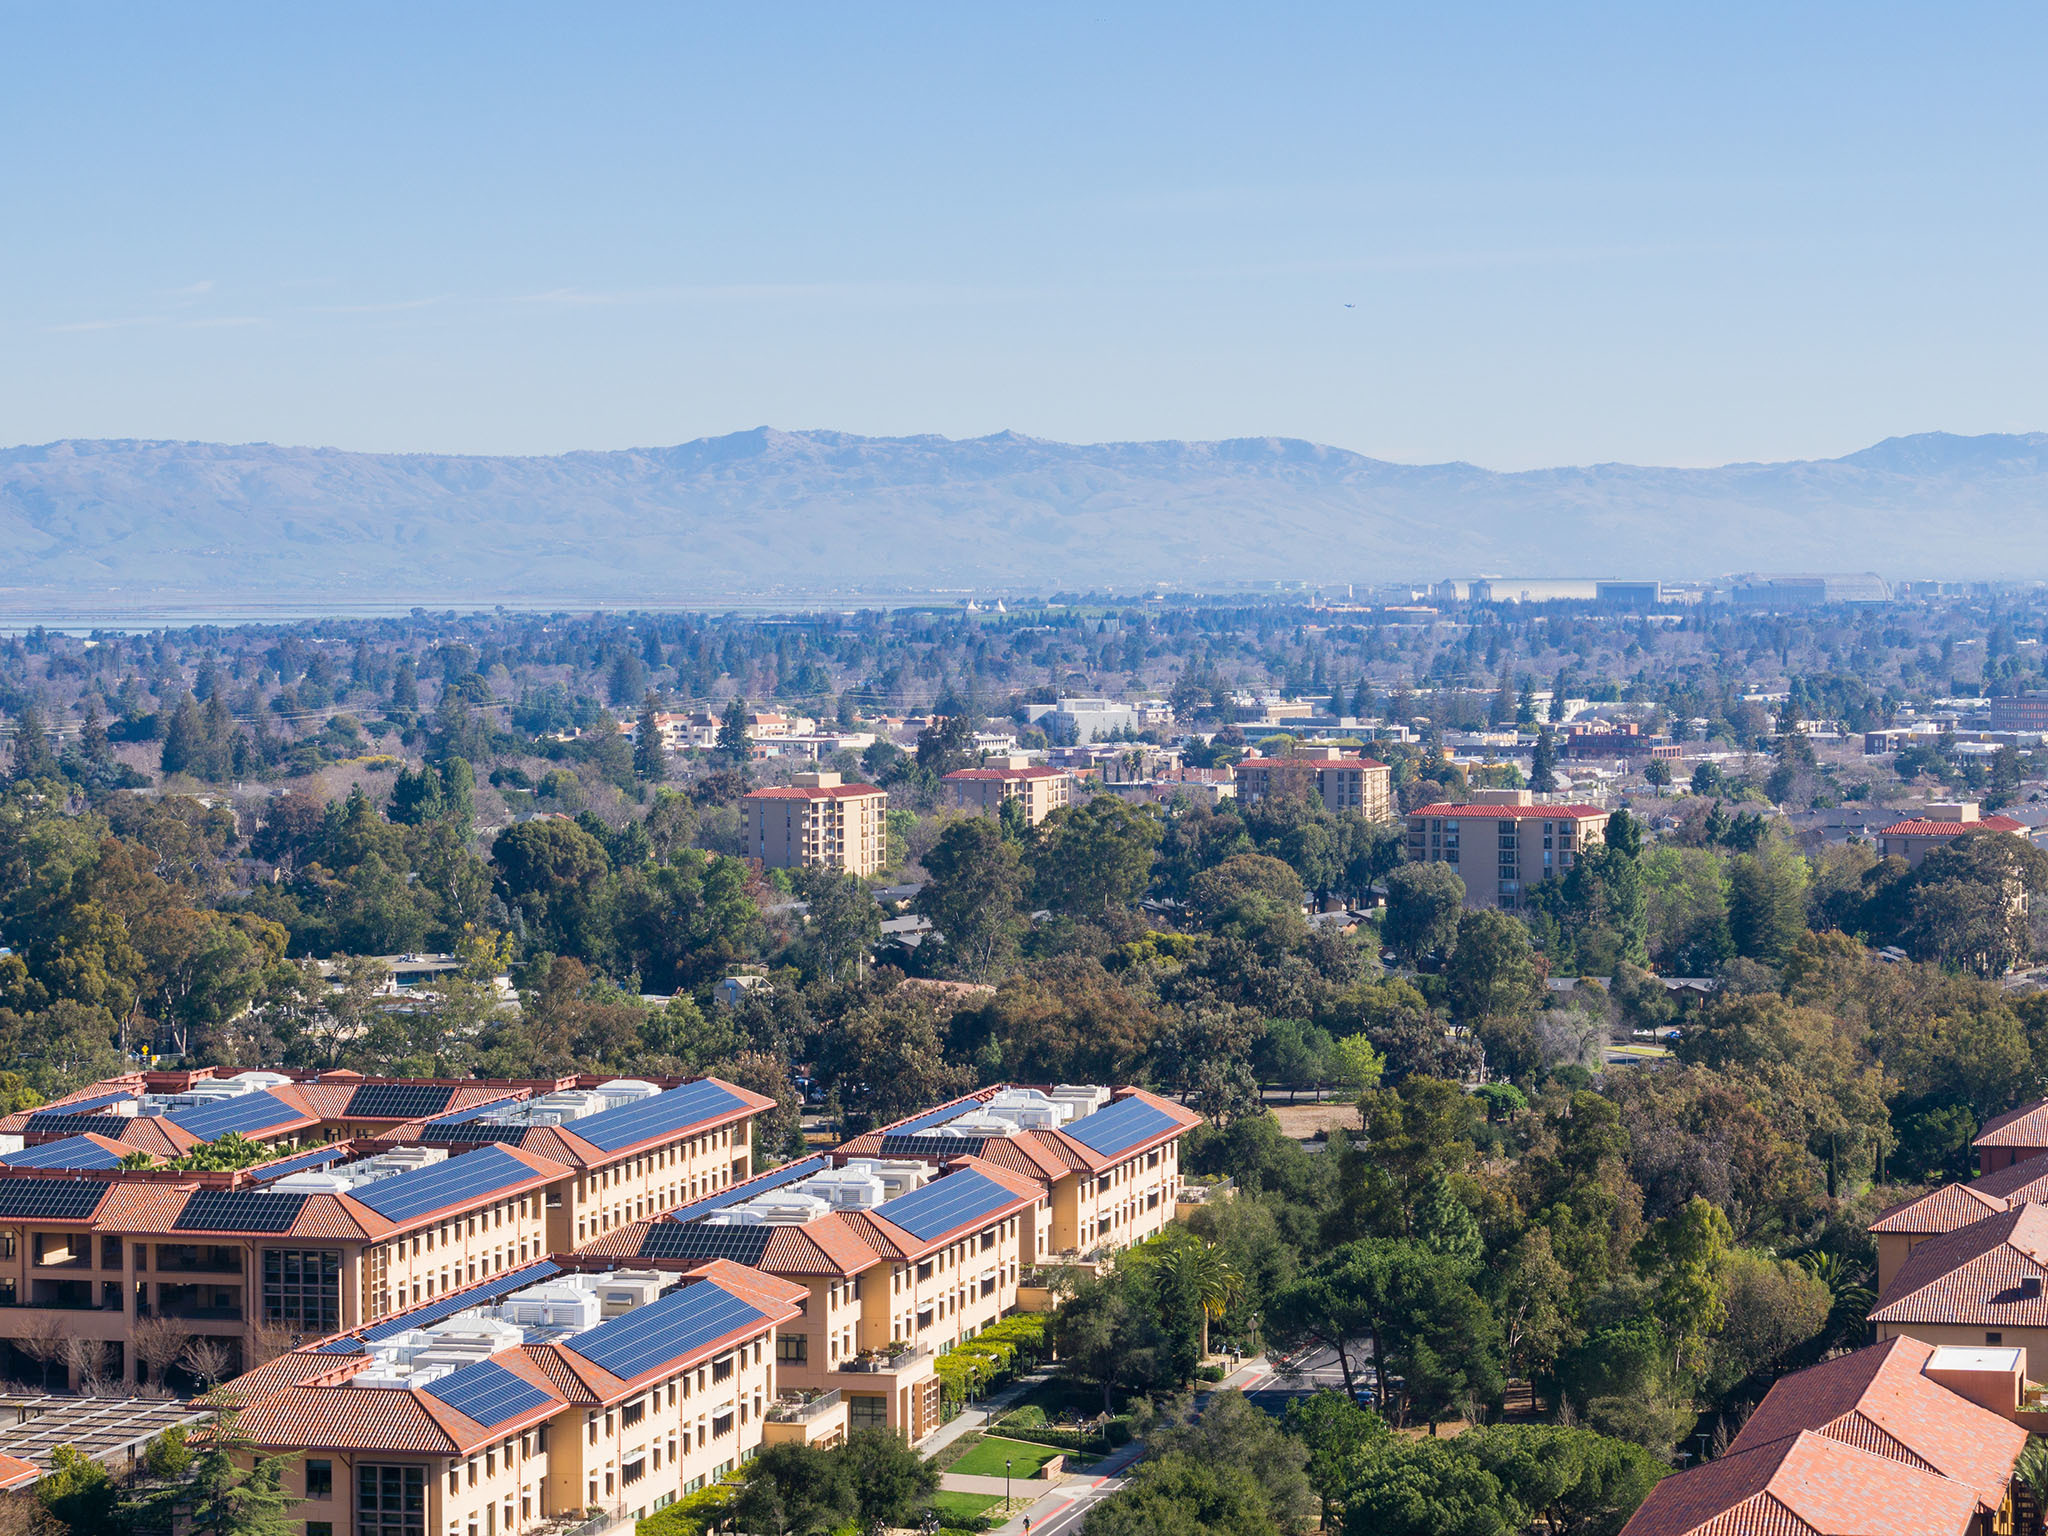 PALO ALTO, CALIFORNIA